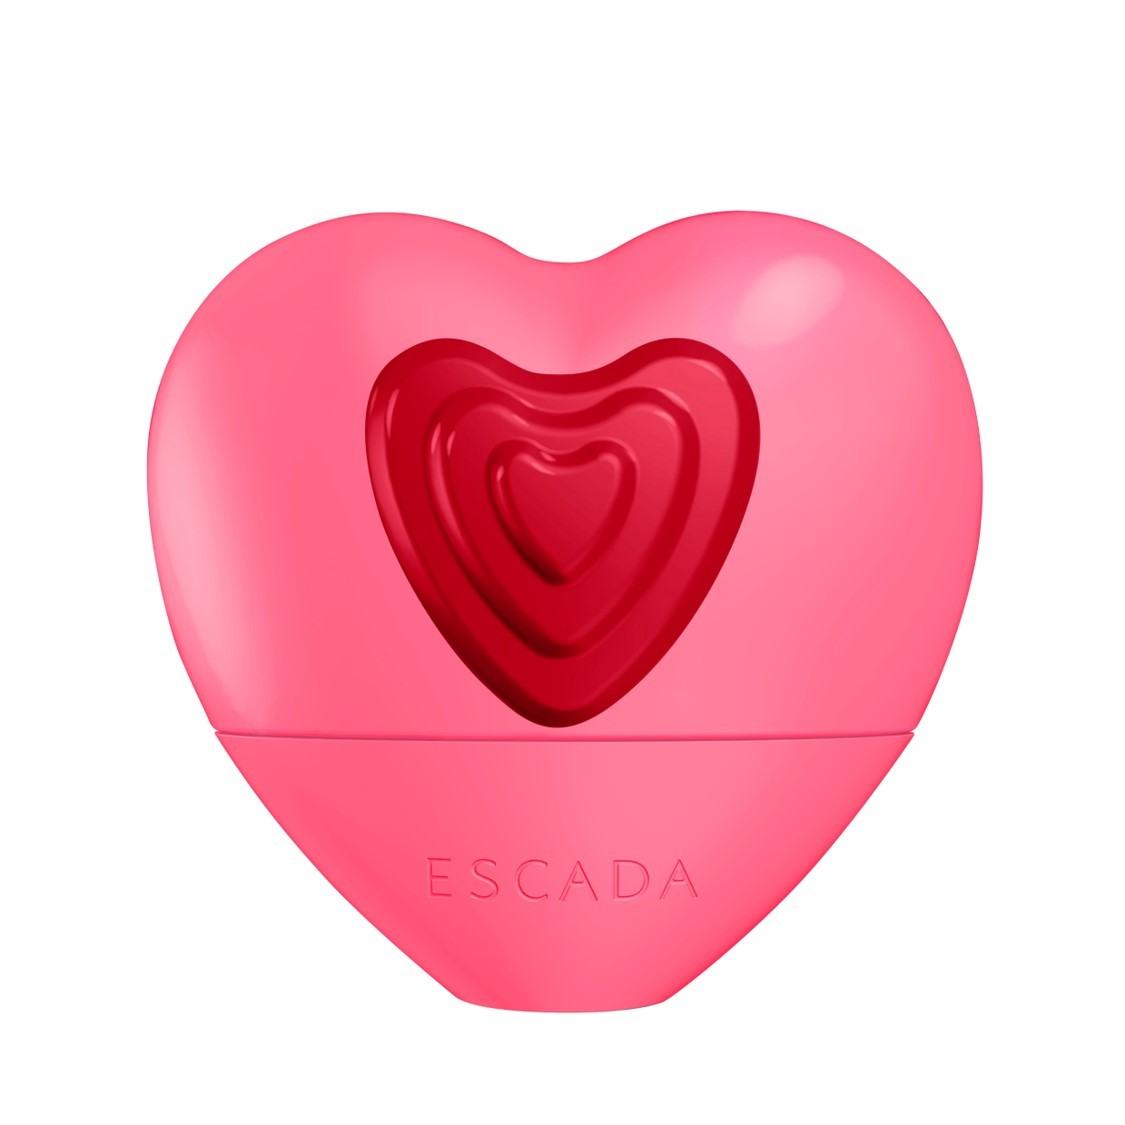 Escada - Candy Love Eau de Toilette -  50 ml